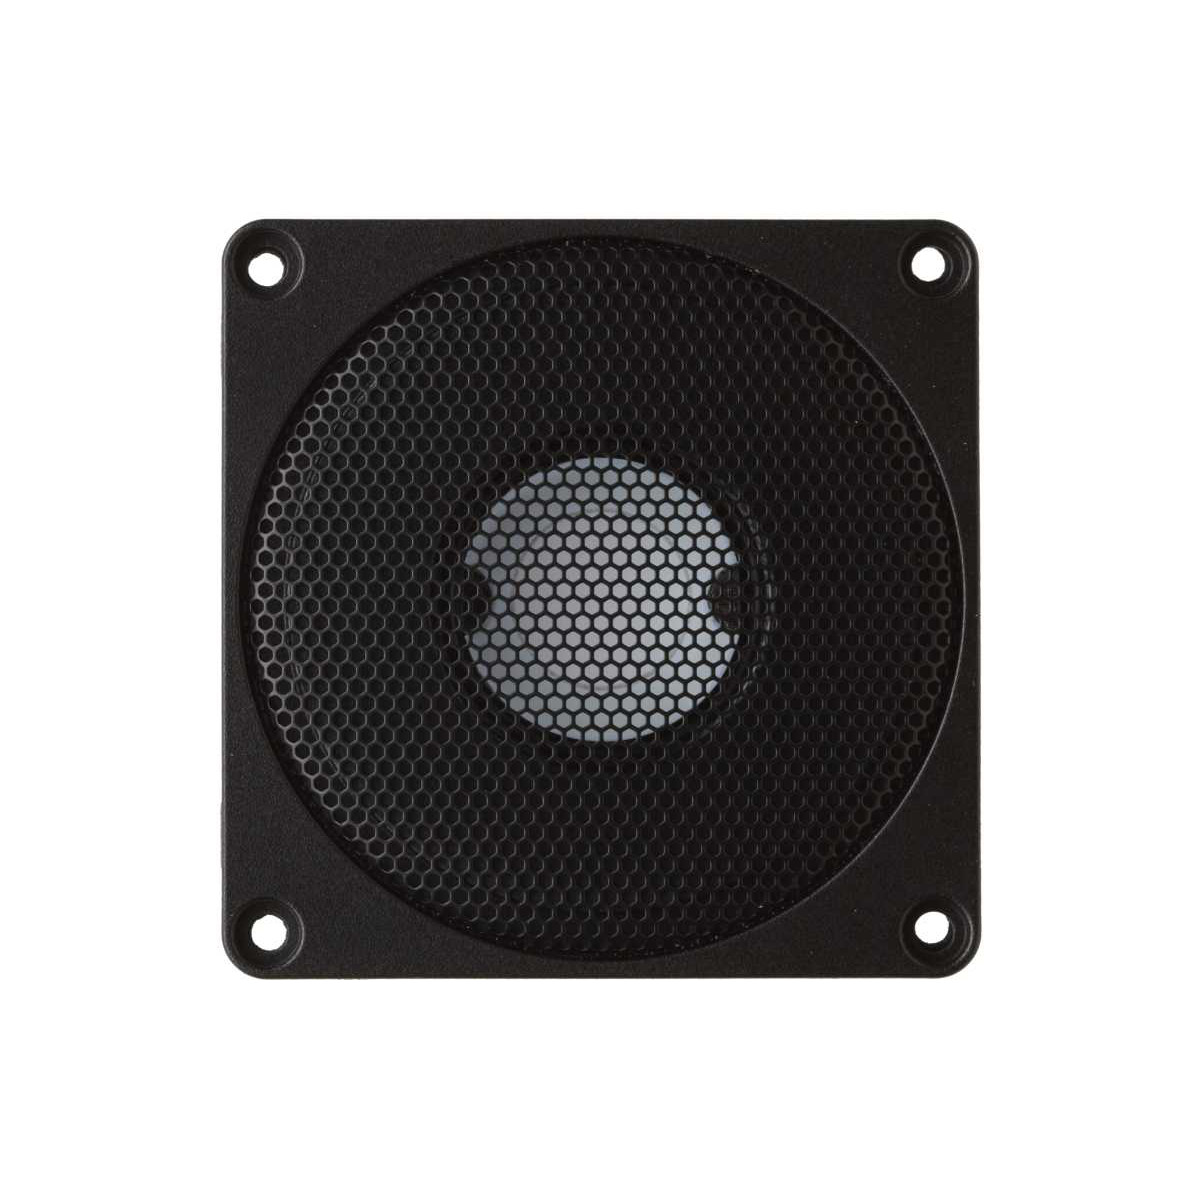 Accuton C30-6-024 Ceramic Dome Tweeter 6 OHM